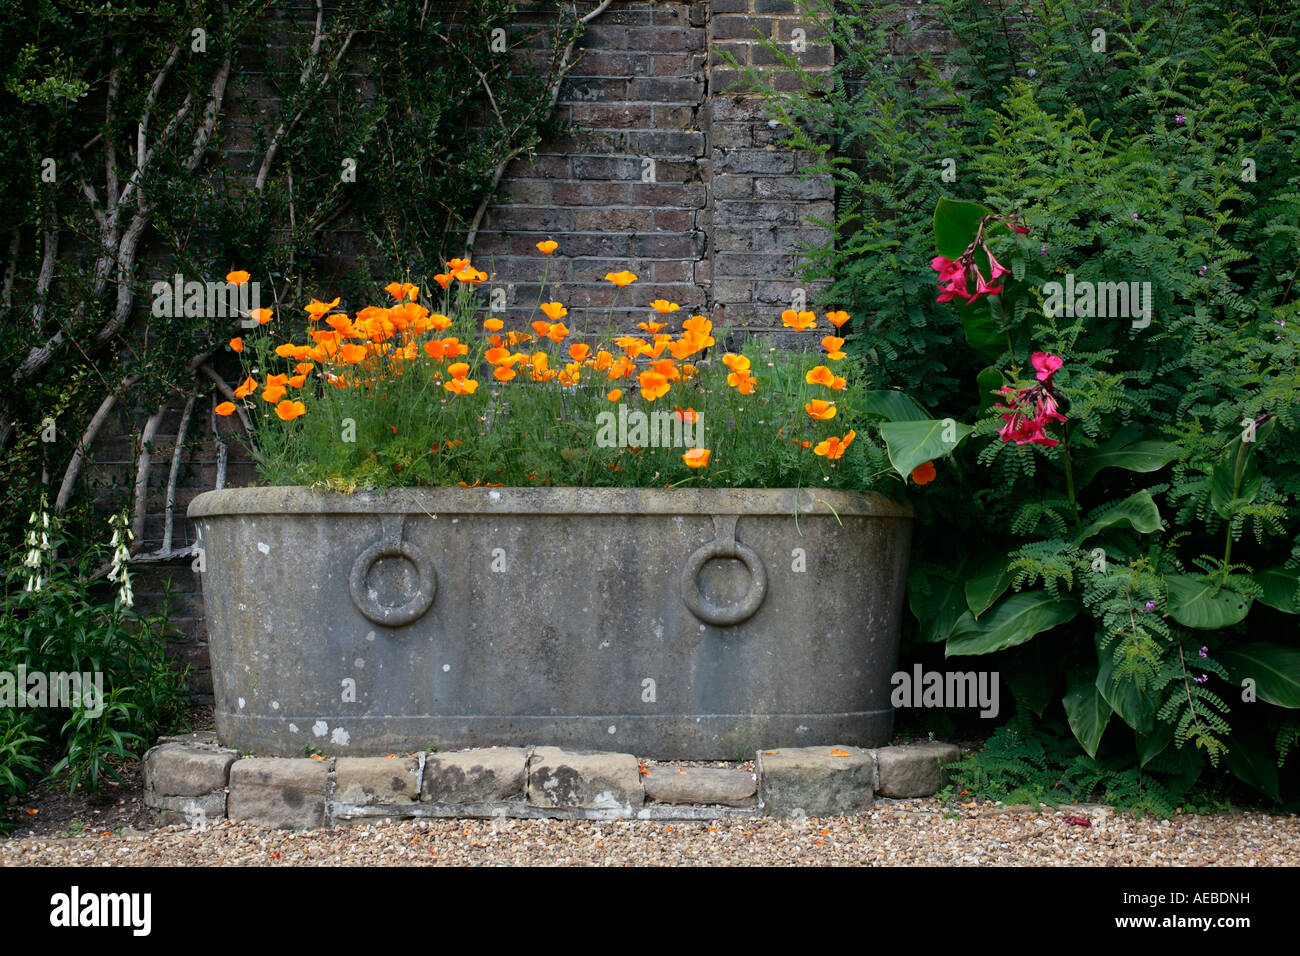 Large Lead Garden Planter Filled With Flowering Californian